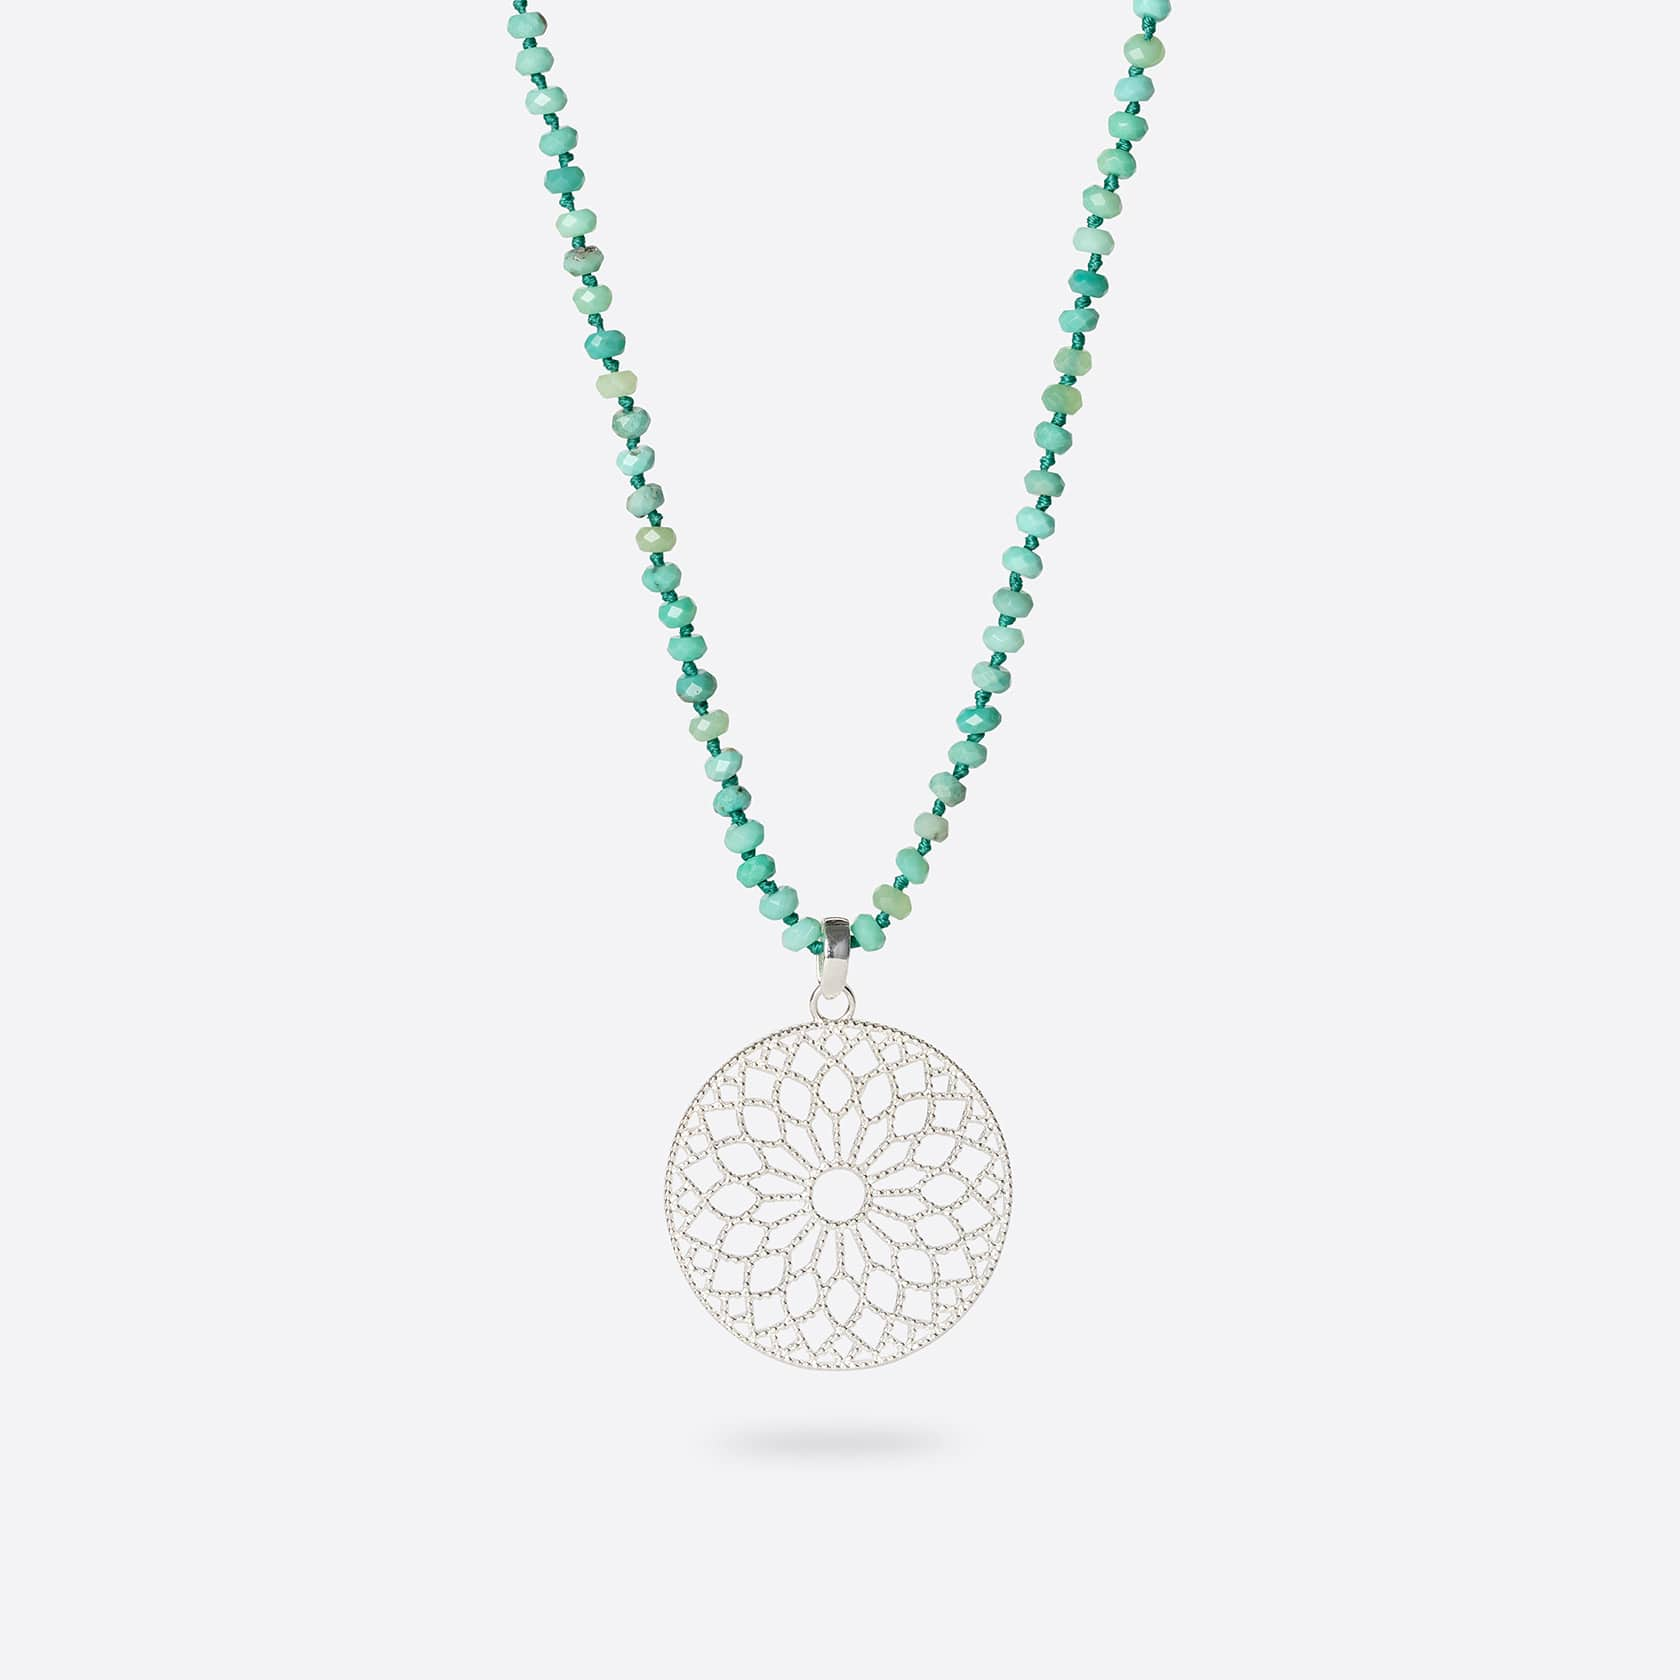 Moana long necklace with pendant